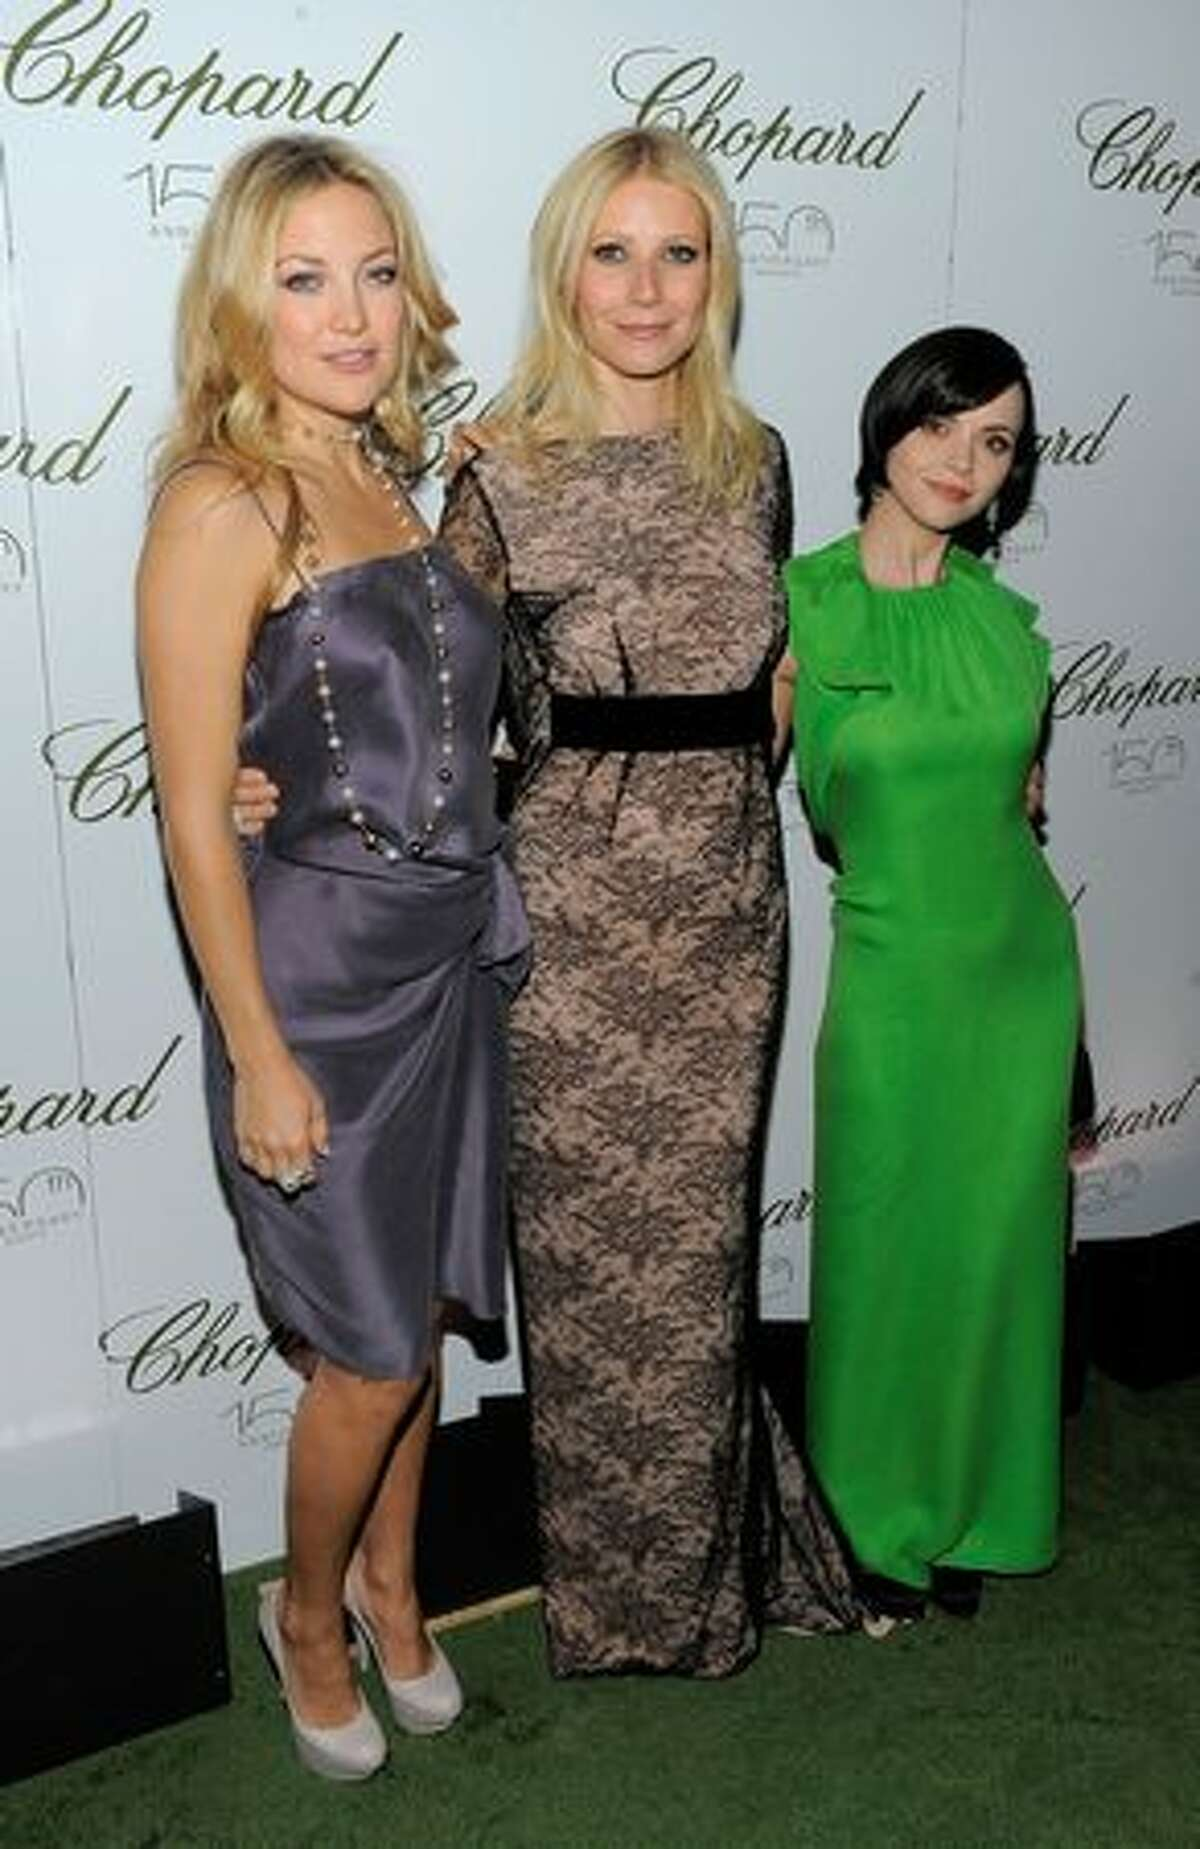 Actors Kate Hudson, Gwyneth Paltrow and Christina Ricci pose for a photo at the star studded gala celebrating Chopard's 150 years of excellence at The Frick Collection on April 29, 2010 in New York City.